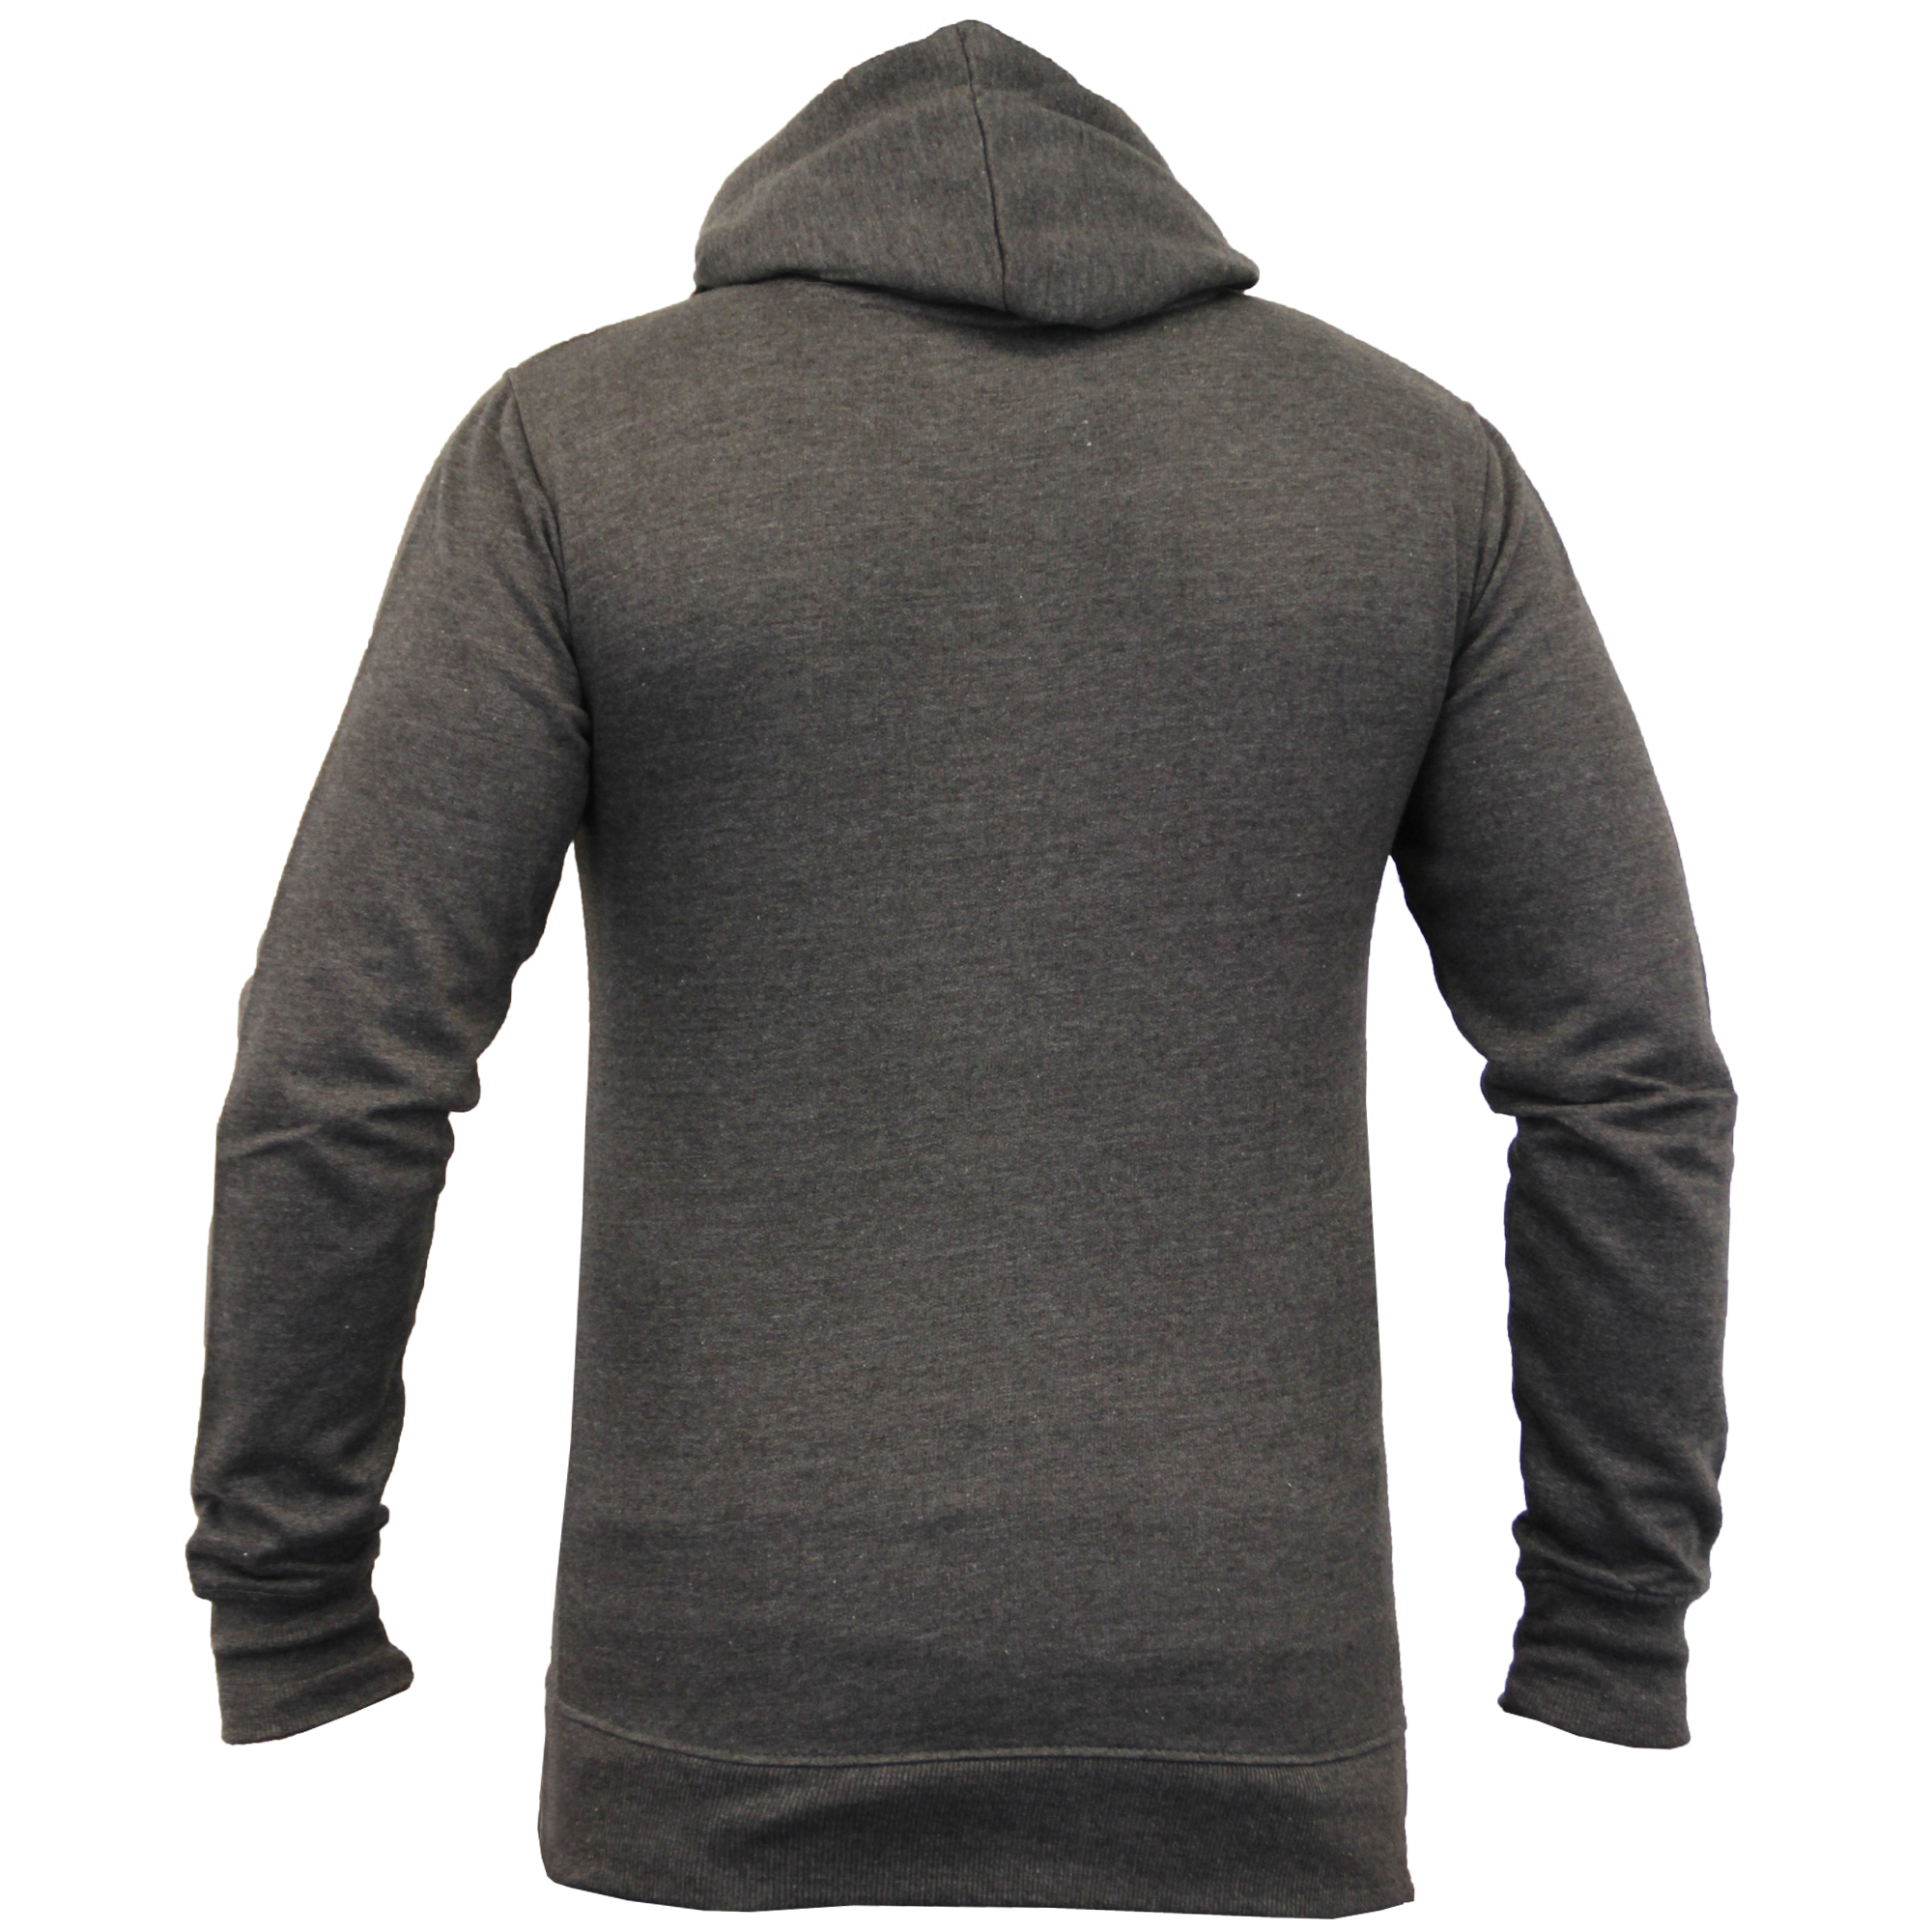 Mens-Diamond-Quilted-Hooded-Top-Fleece-Lined-Sweatshirt-By-Galvanize thumbnail 12